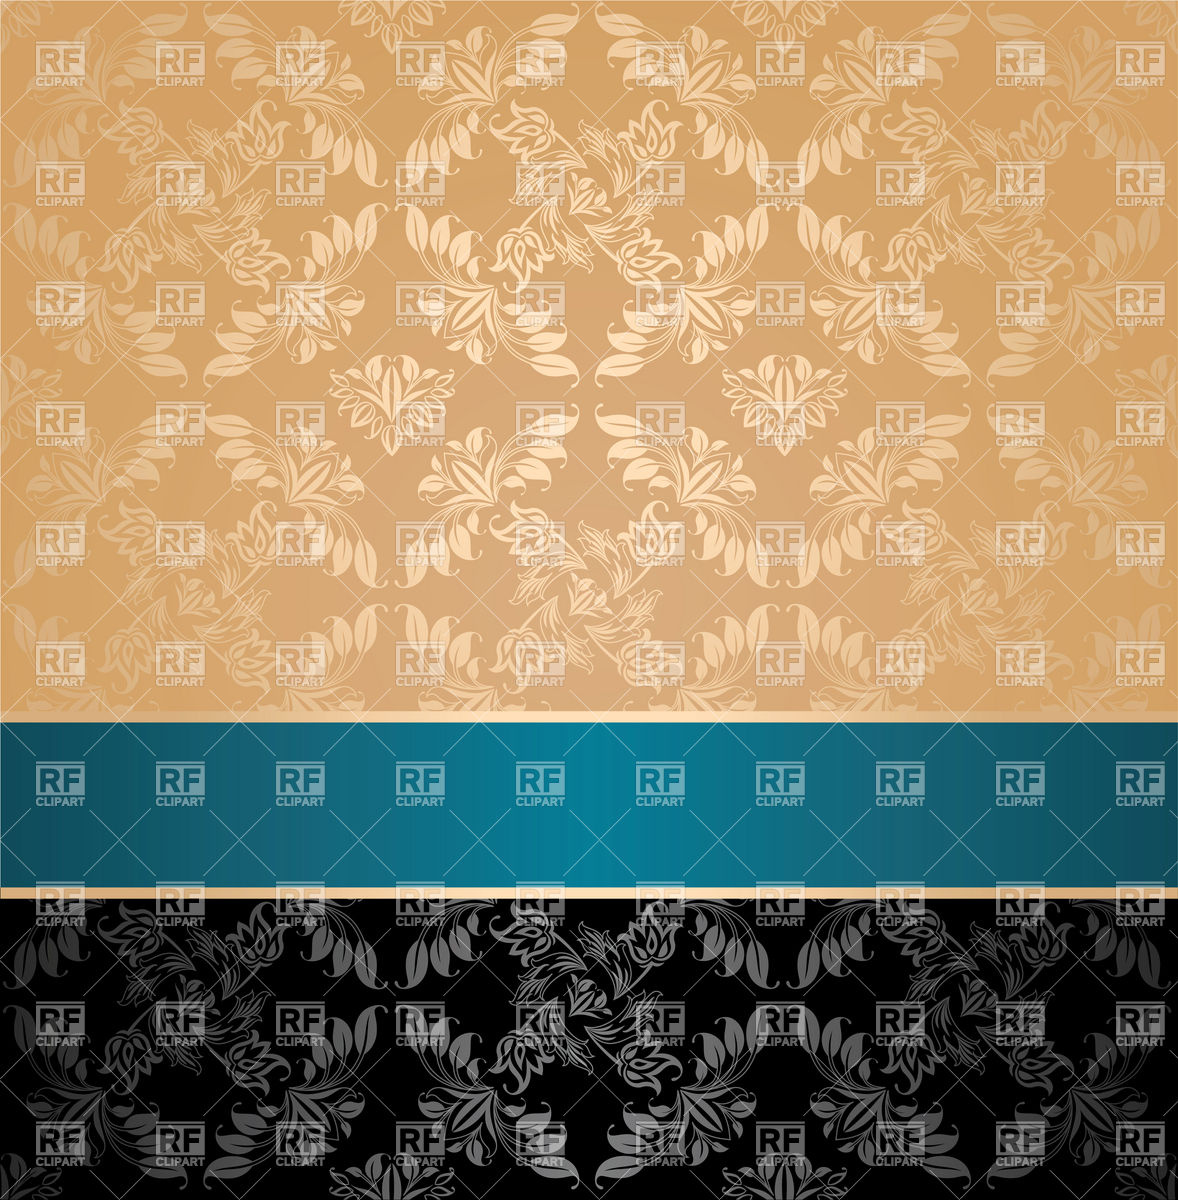 Beige and black mother of pearl victorian wallpaper Vector Image.